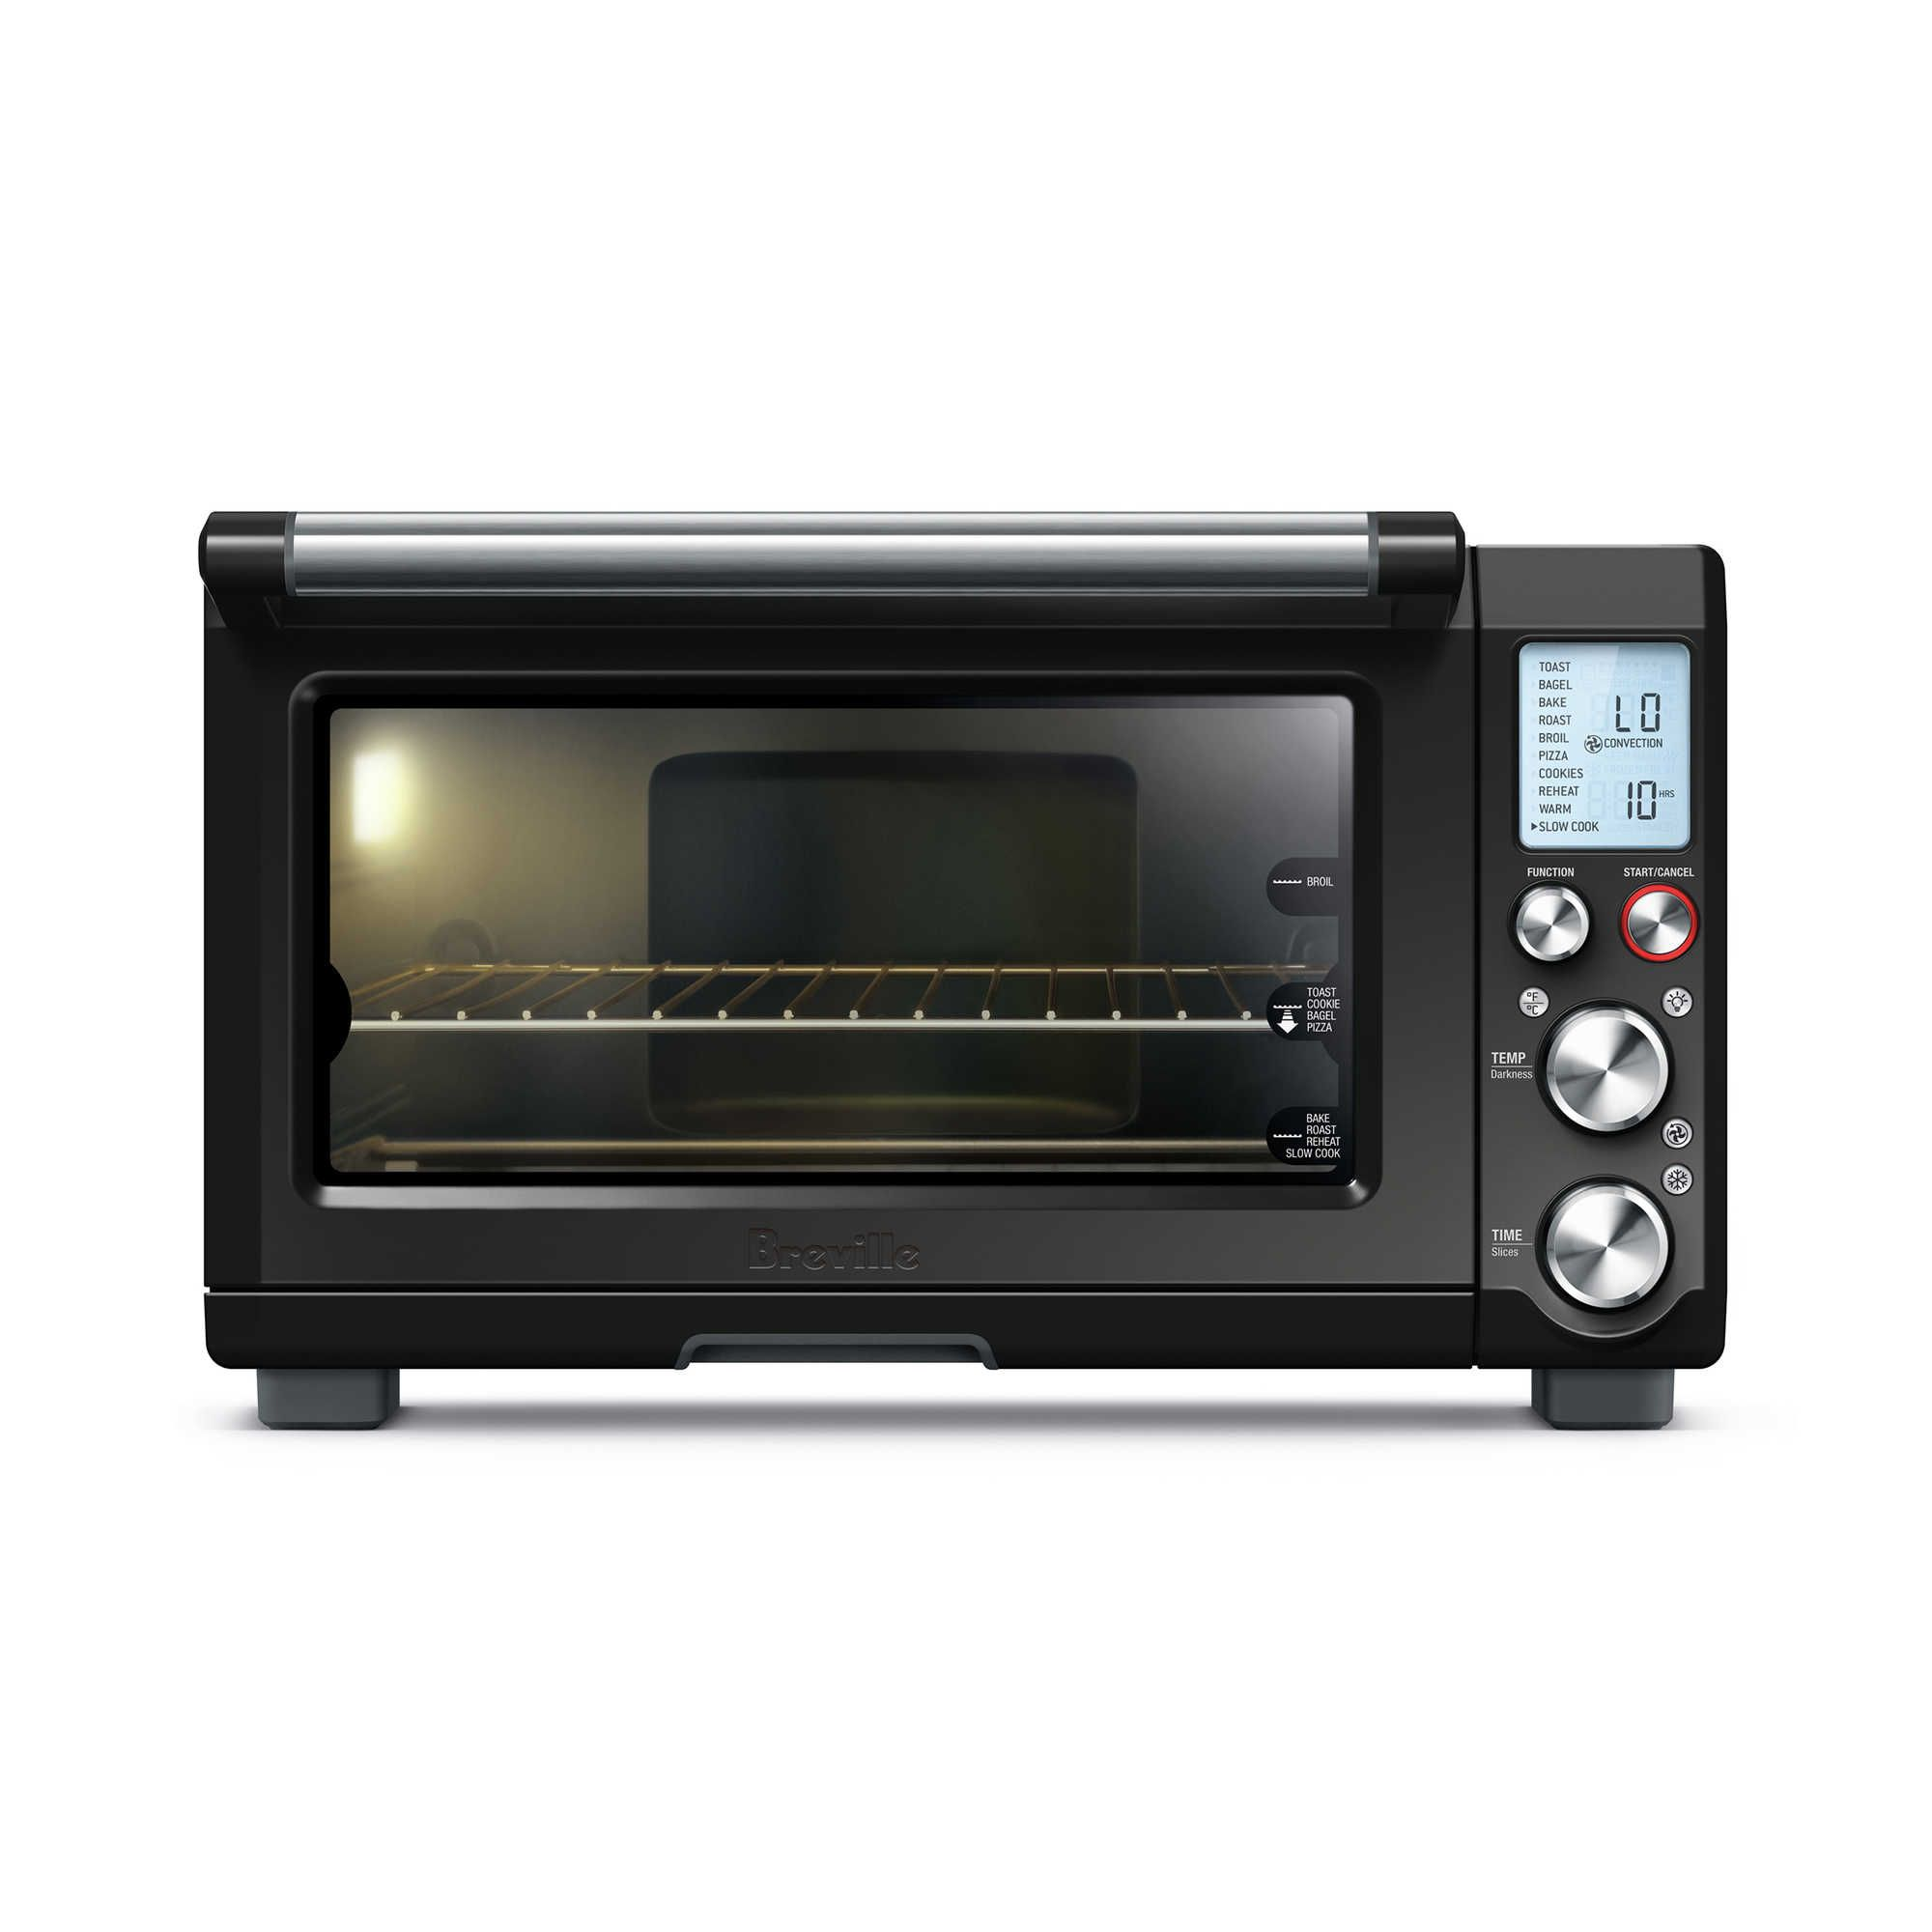 com bi breville wondrous kitchen kohls edmonton with delicate toaster mesmerize iq mini delightful ovens bovxl element oven full dining countertop convection sunroom amazon size of awesome sale smart